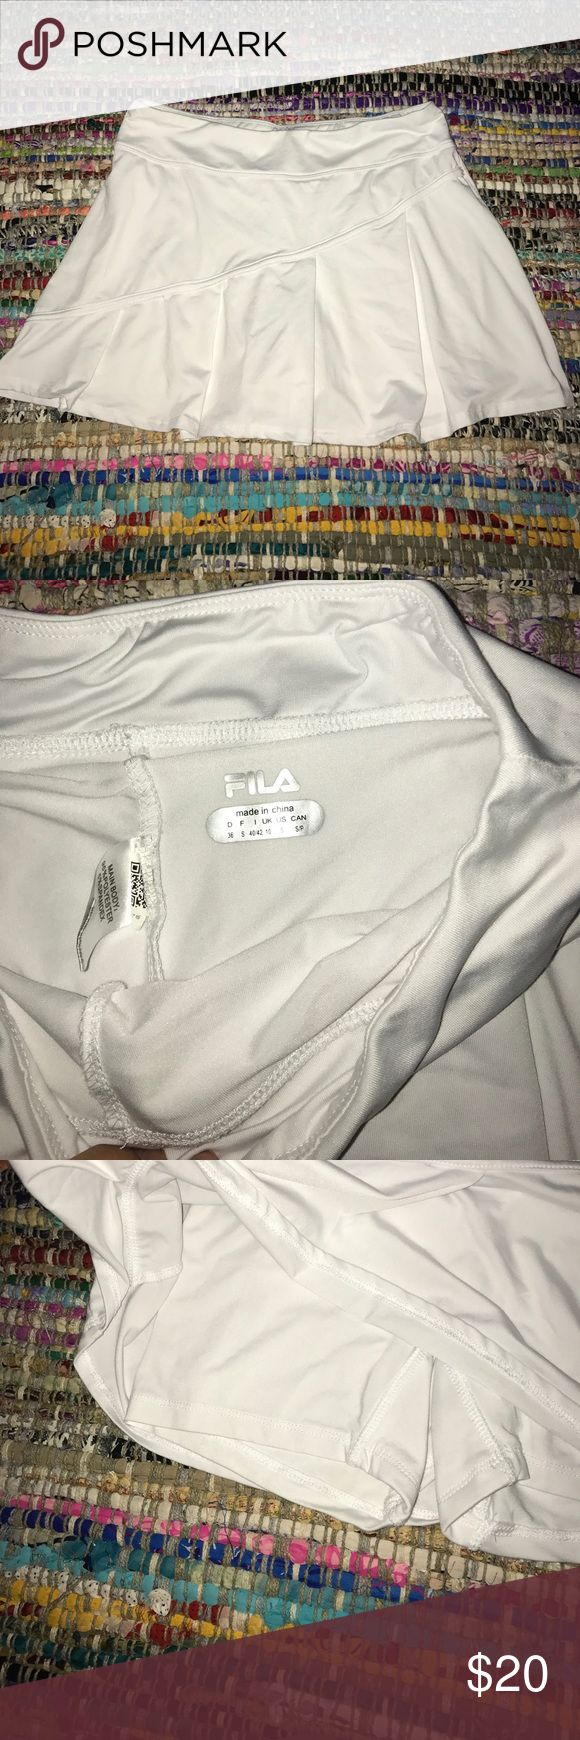 Tennis or running skort White FILA running/tennis skirt. VERY SOFT and breathable. Fila Shorts Skorts